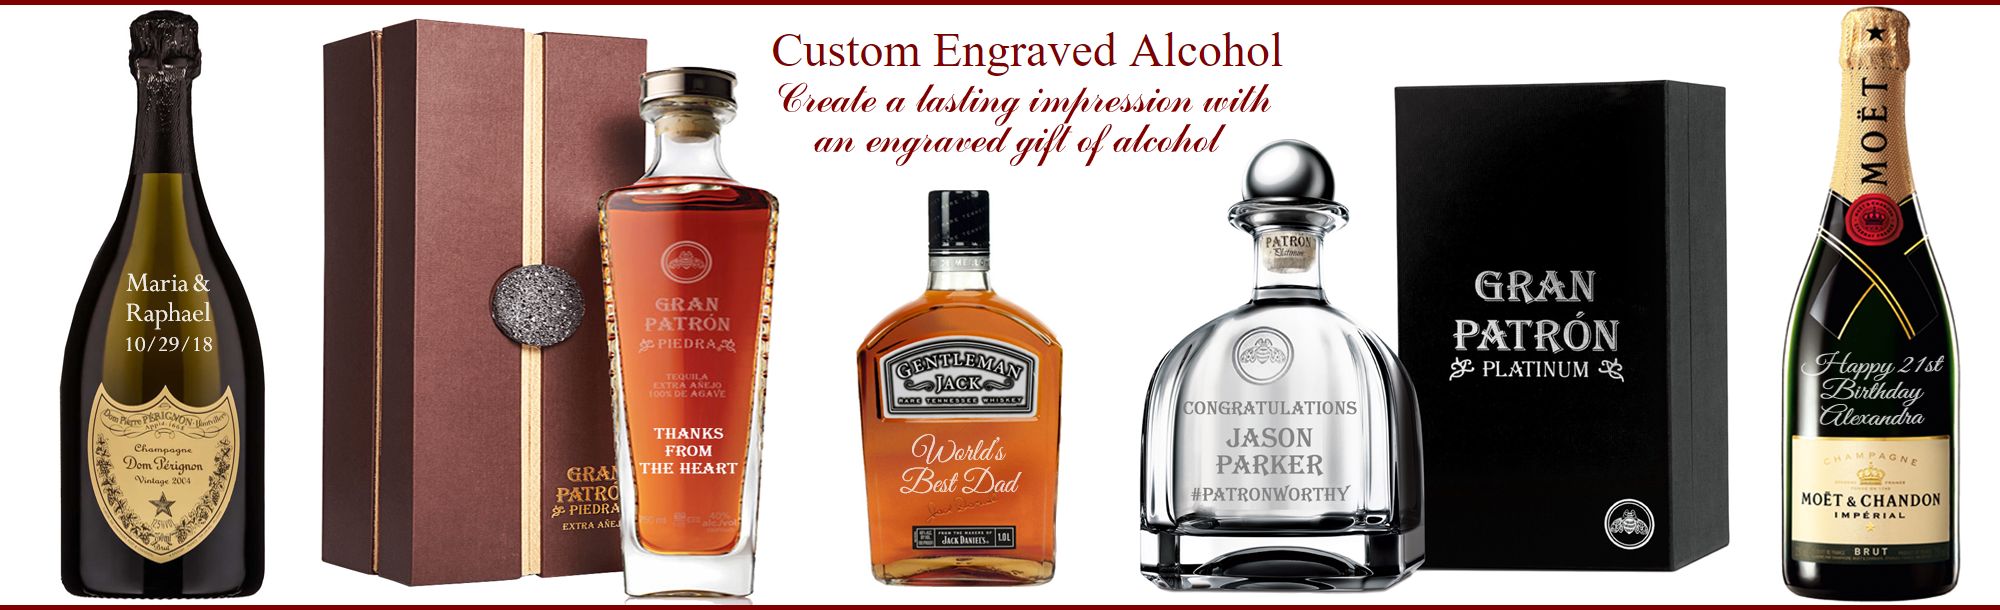 Engraved Alcohol, Wine & Champagne